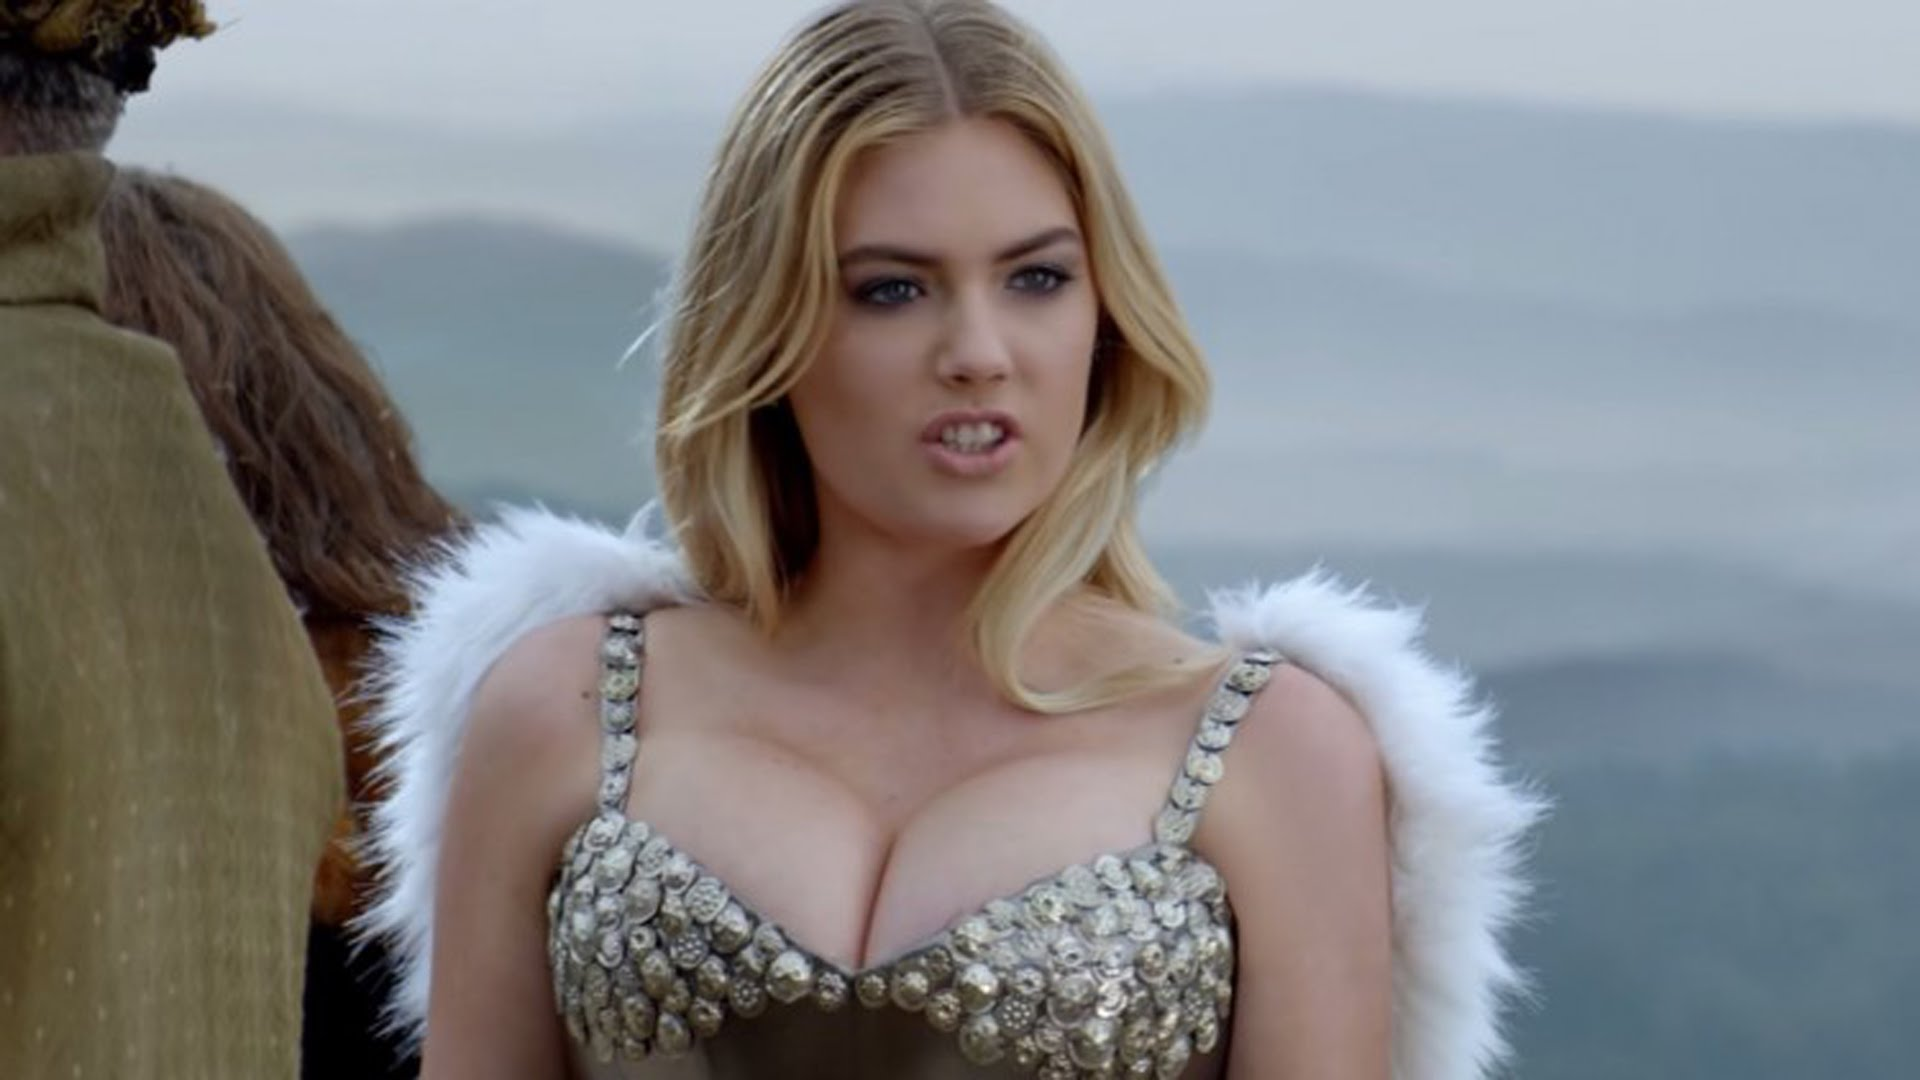 Kate Upton 1920x1080 Posted By Ryan Cunningham